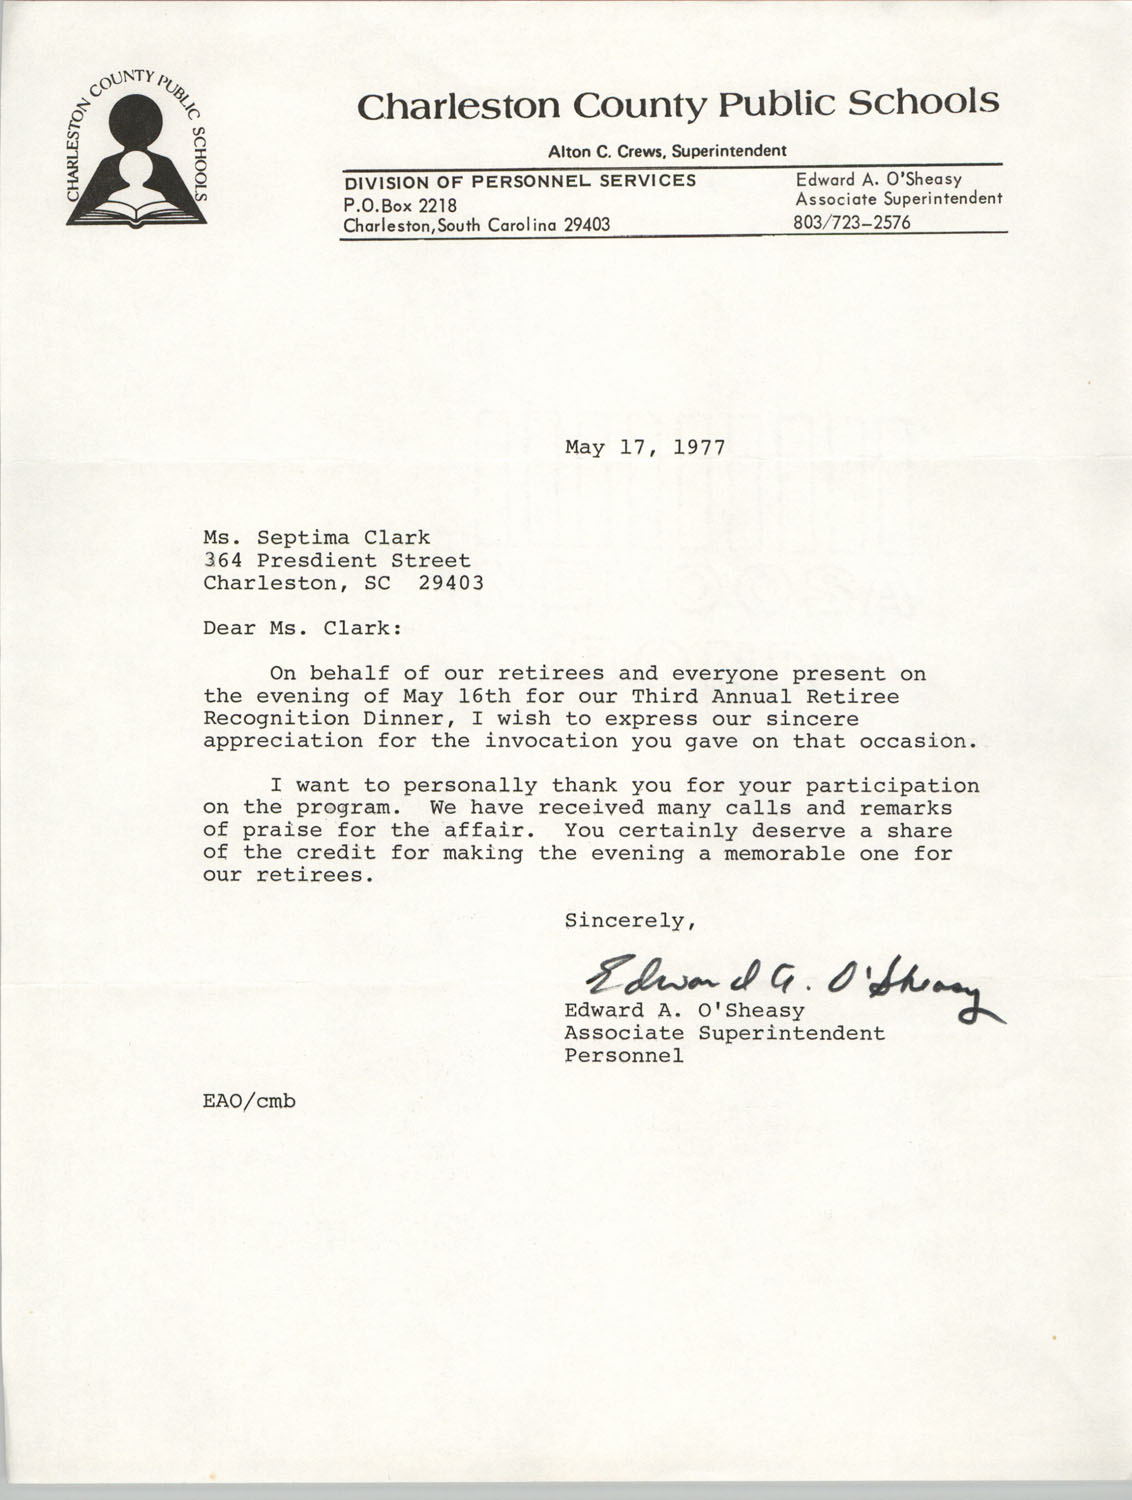 Letter from Edward A. O'Sheasy to Septima P. Clark, May 17, 1977